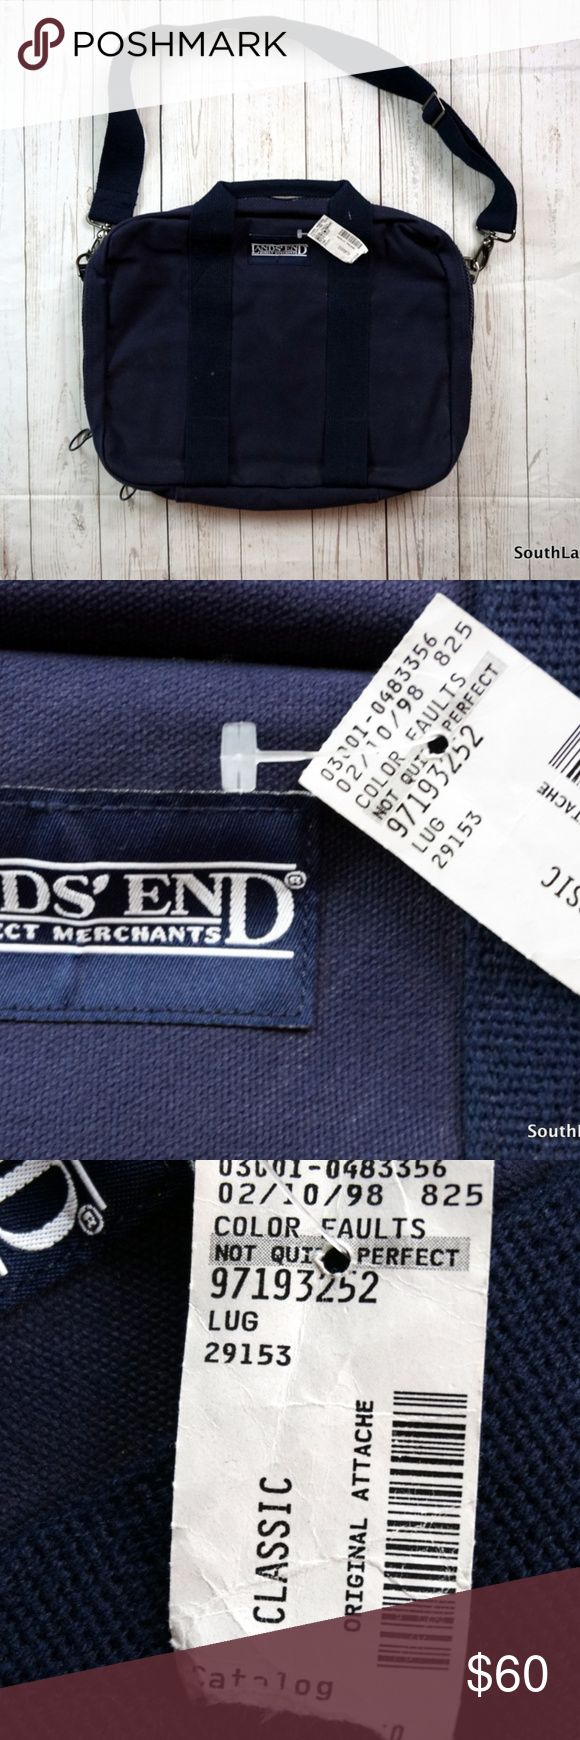 """Vintage Deadstock Lands End Messinger Bag Navy Vintage Deadstock Lands End Messenger Bag Navy  Measures 19"""" Inches by 14"""" Inches!  Made in the USA!  Style #29153  Ships in 1 business day or less from a clean and smoke free environment. Bundle to Save! Thanks! Lands End Bags Messenger Bags"""